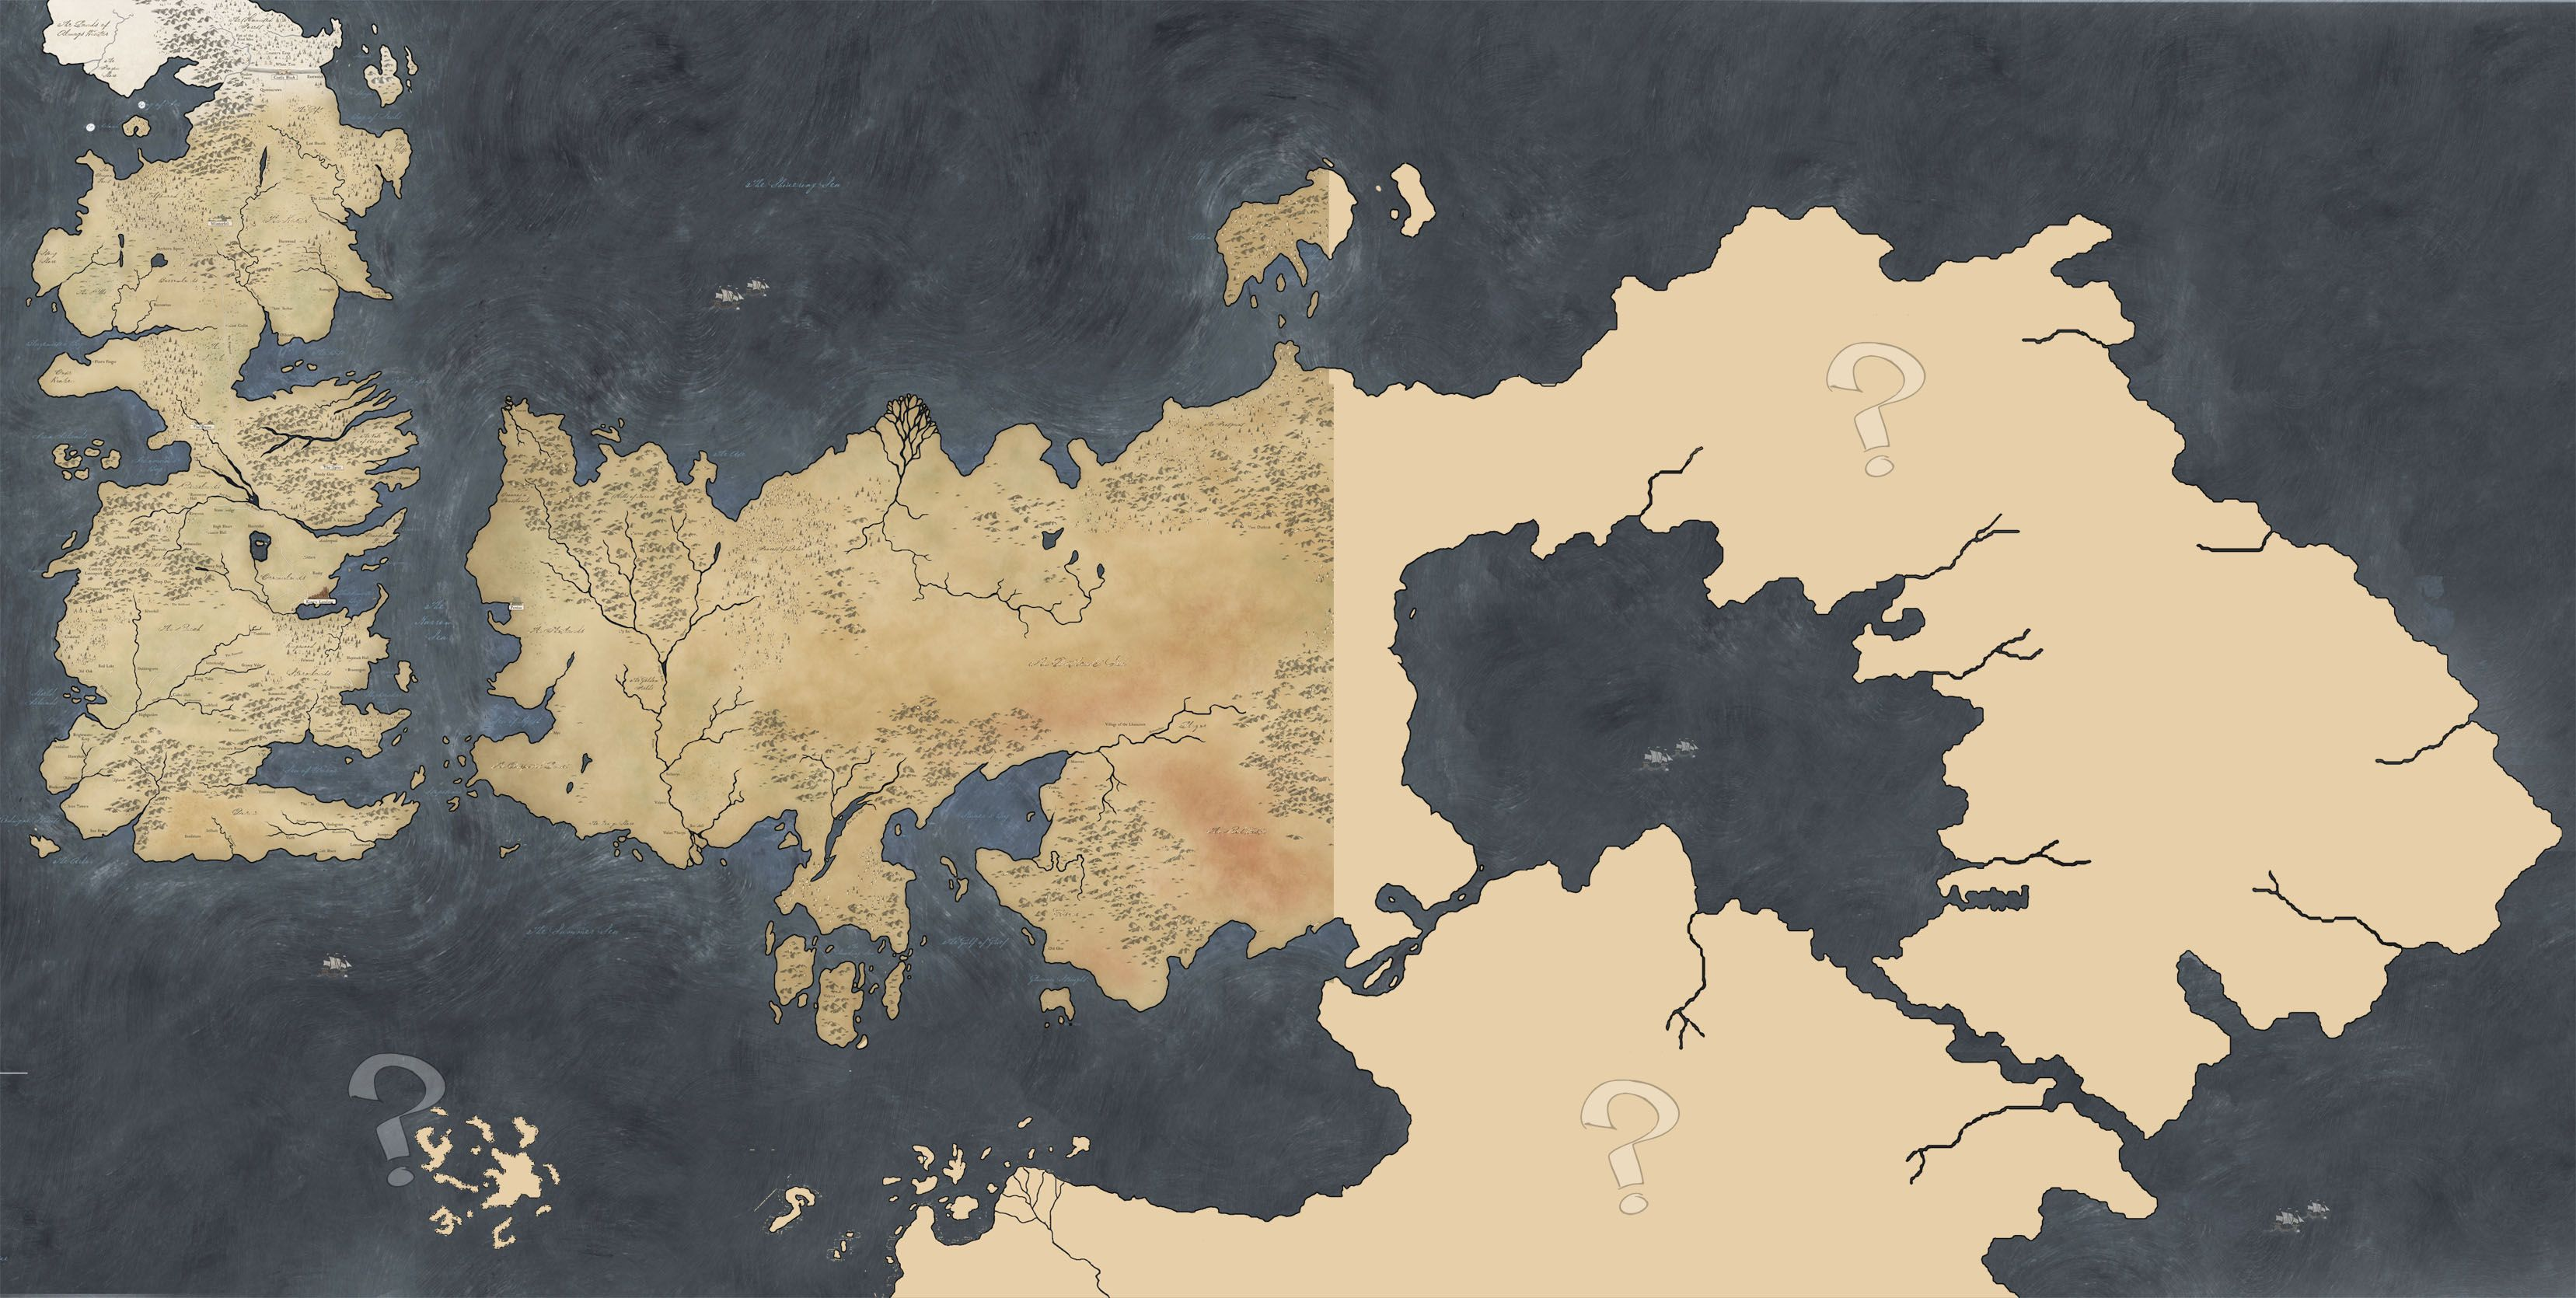 Asoiaf wallpaper google search asoiaf pinterest songs game of thrones essos map gumiabroncs Choice Image